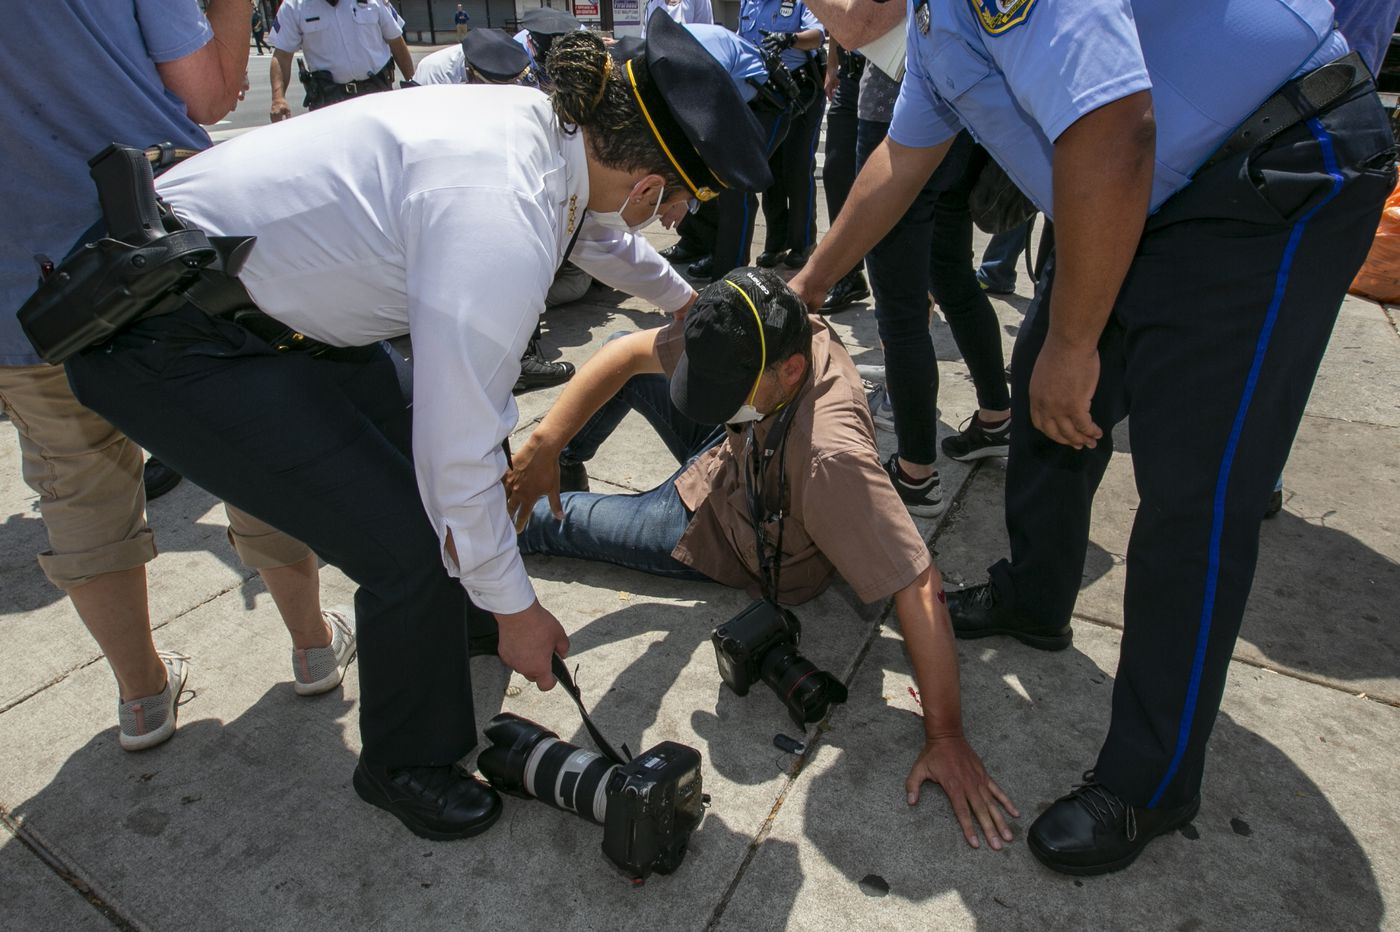 A news photographer was punched and knocked to the ground. Commissioner Outlaw was one of the officers who responded.